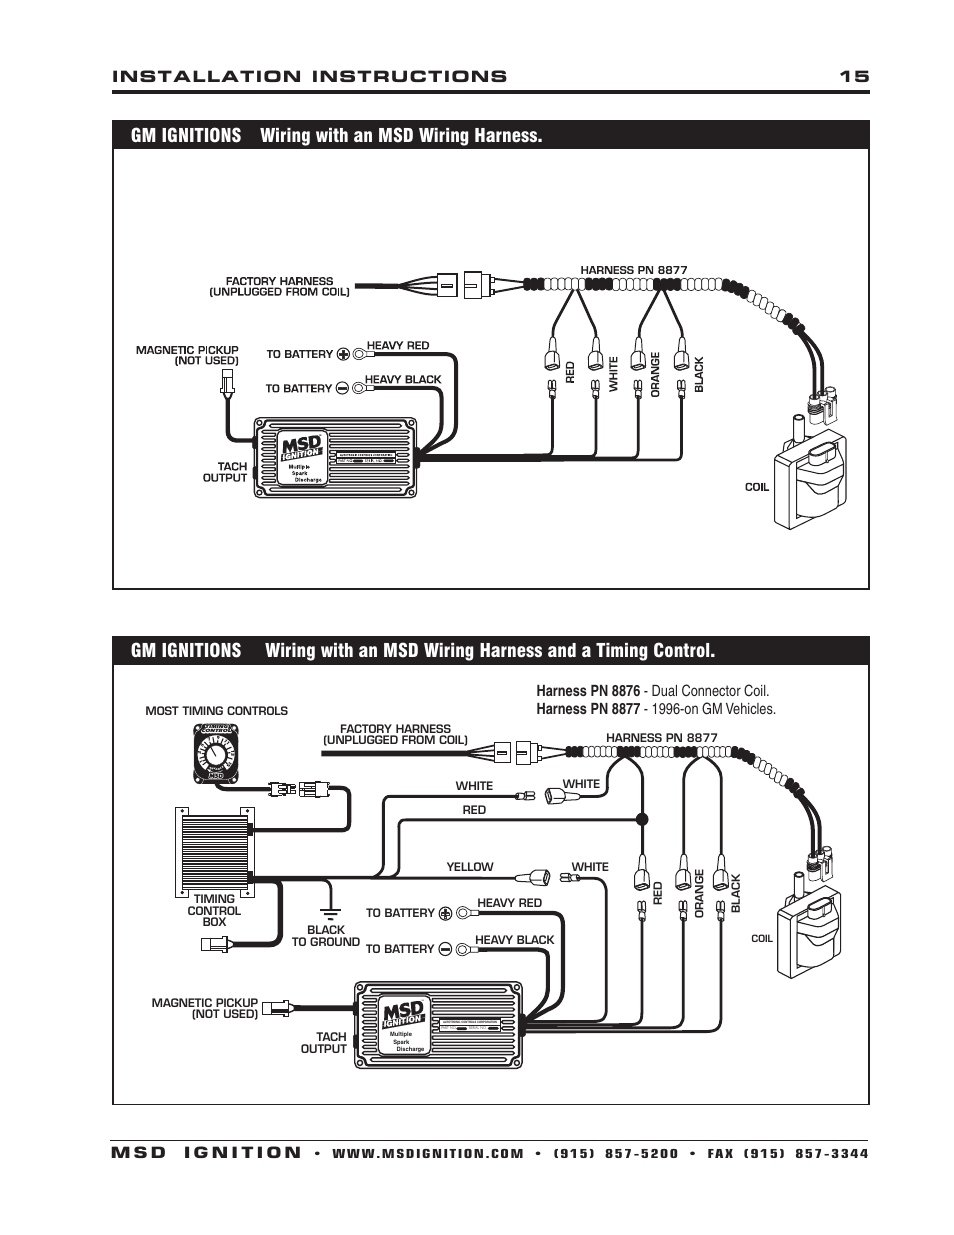 Msd 8876 Instructions 6ls Wiring Harness Gm Ignitions With An 6430 6aln Rh Manualsdir Com Ford